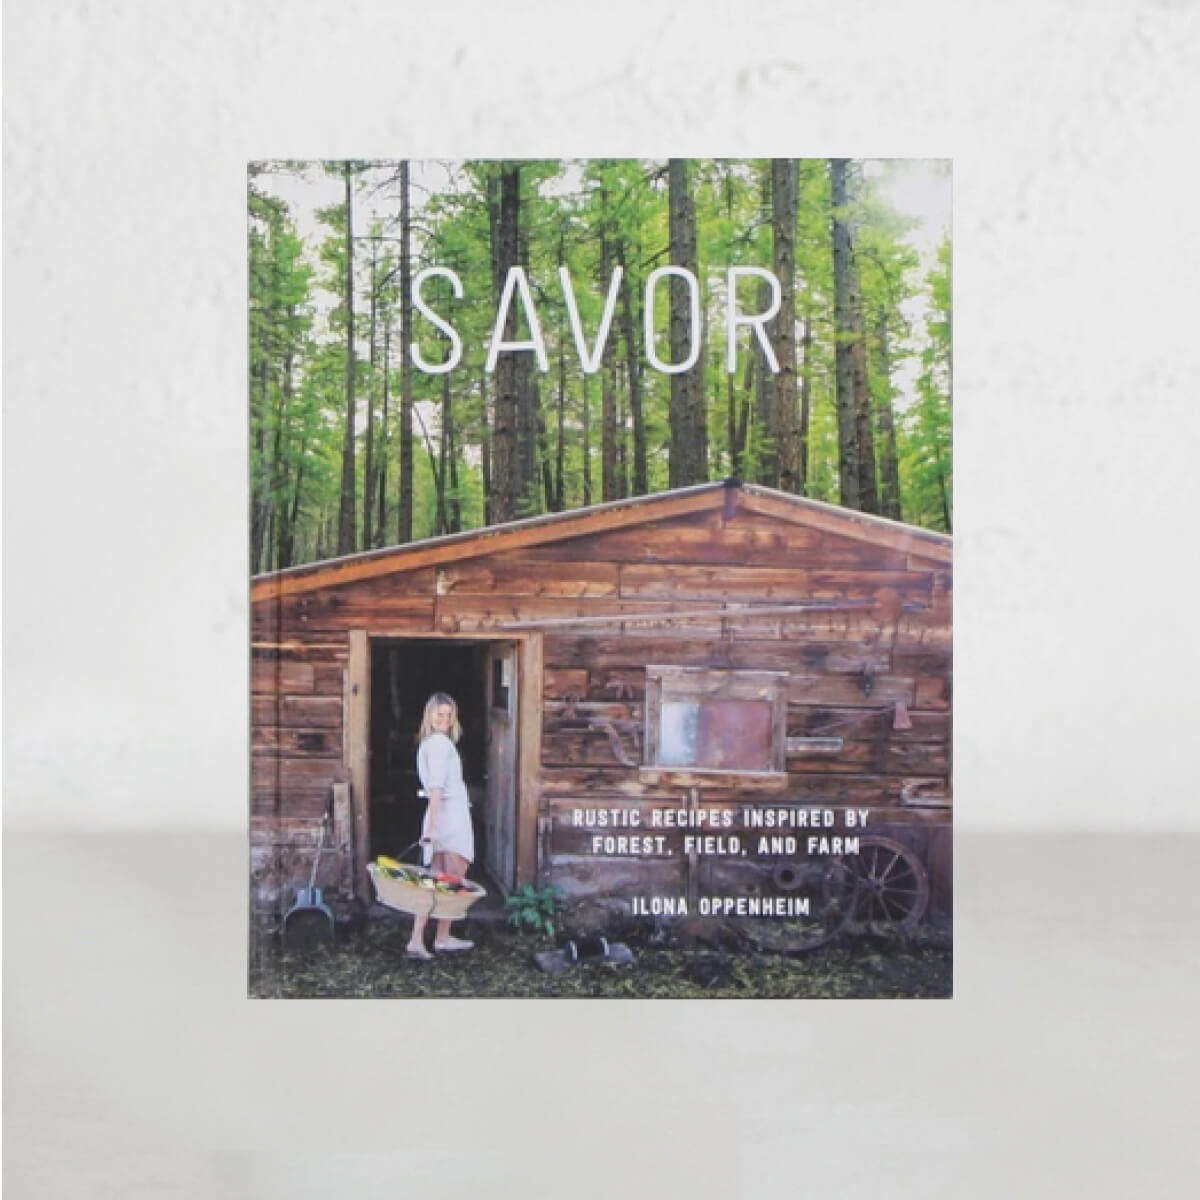 SAVOR RUSIC RECEIPES INSPIRED BY FOREST, FIELD, FARM  |  ILONA OPPENHEIM